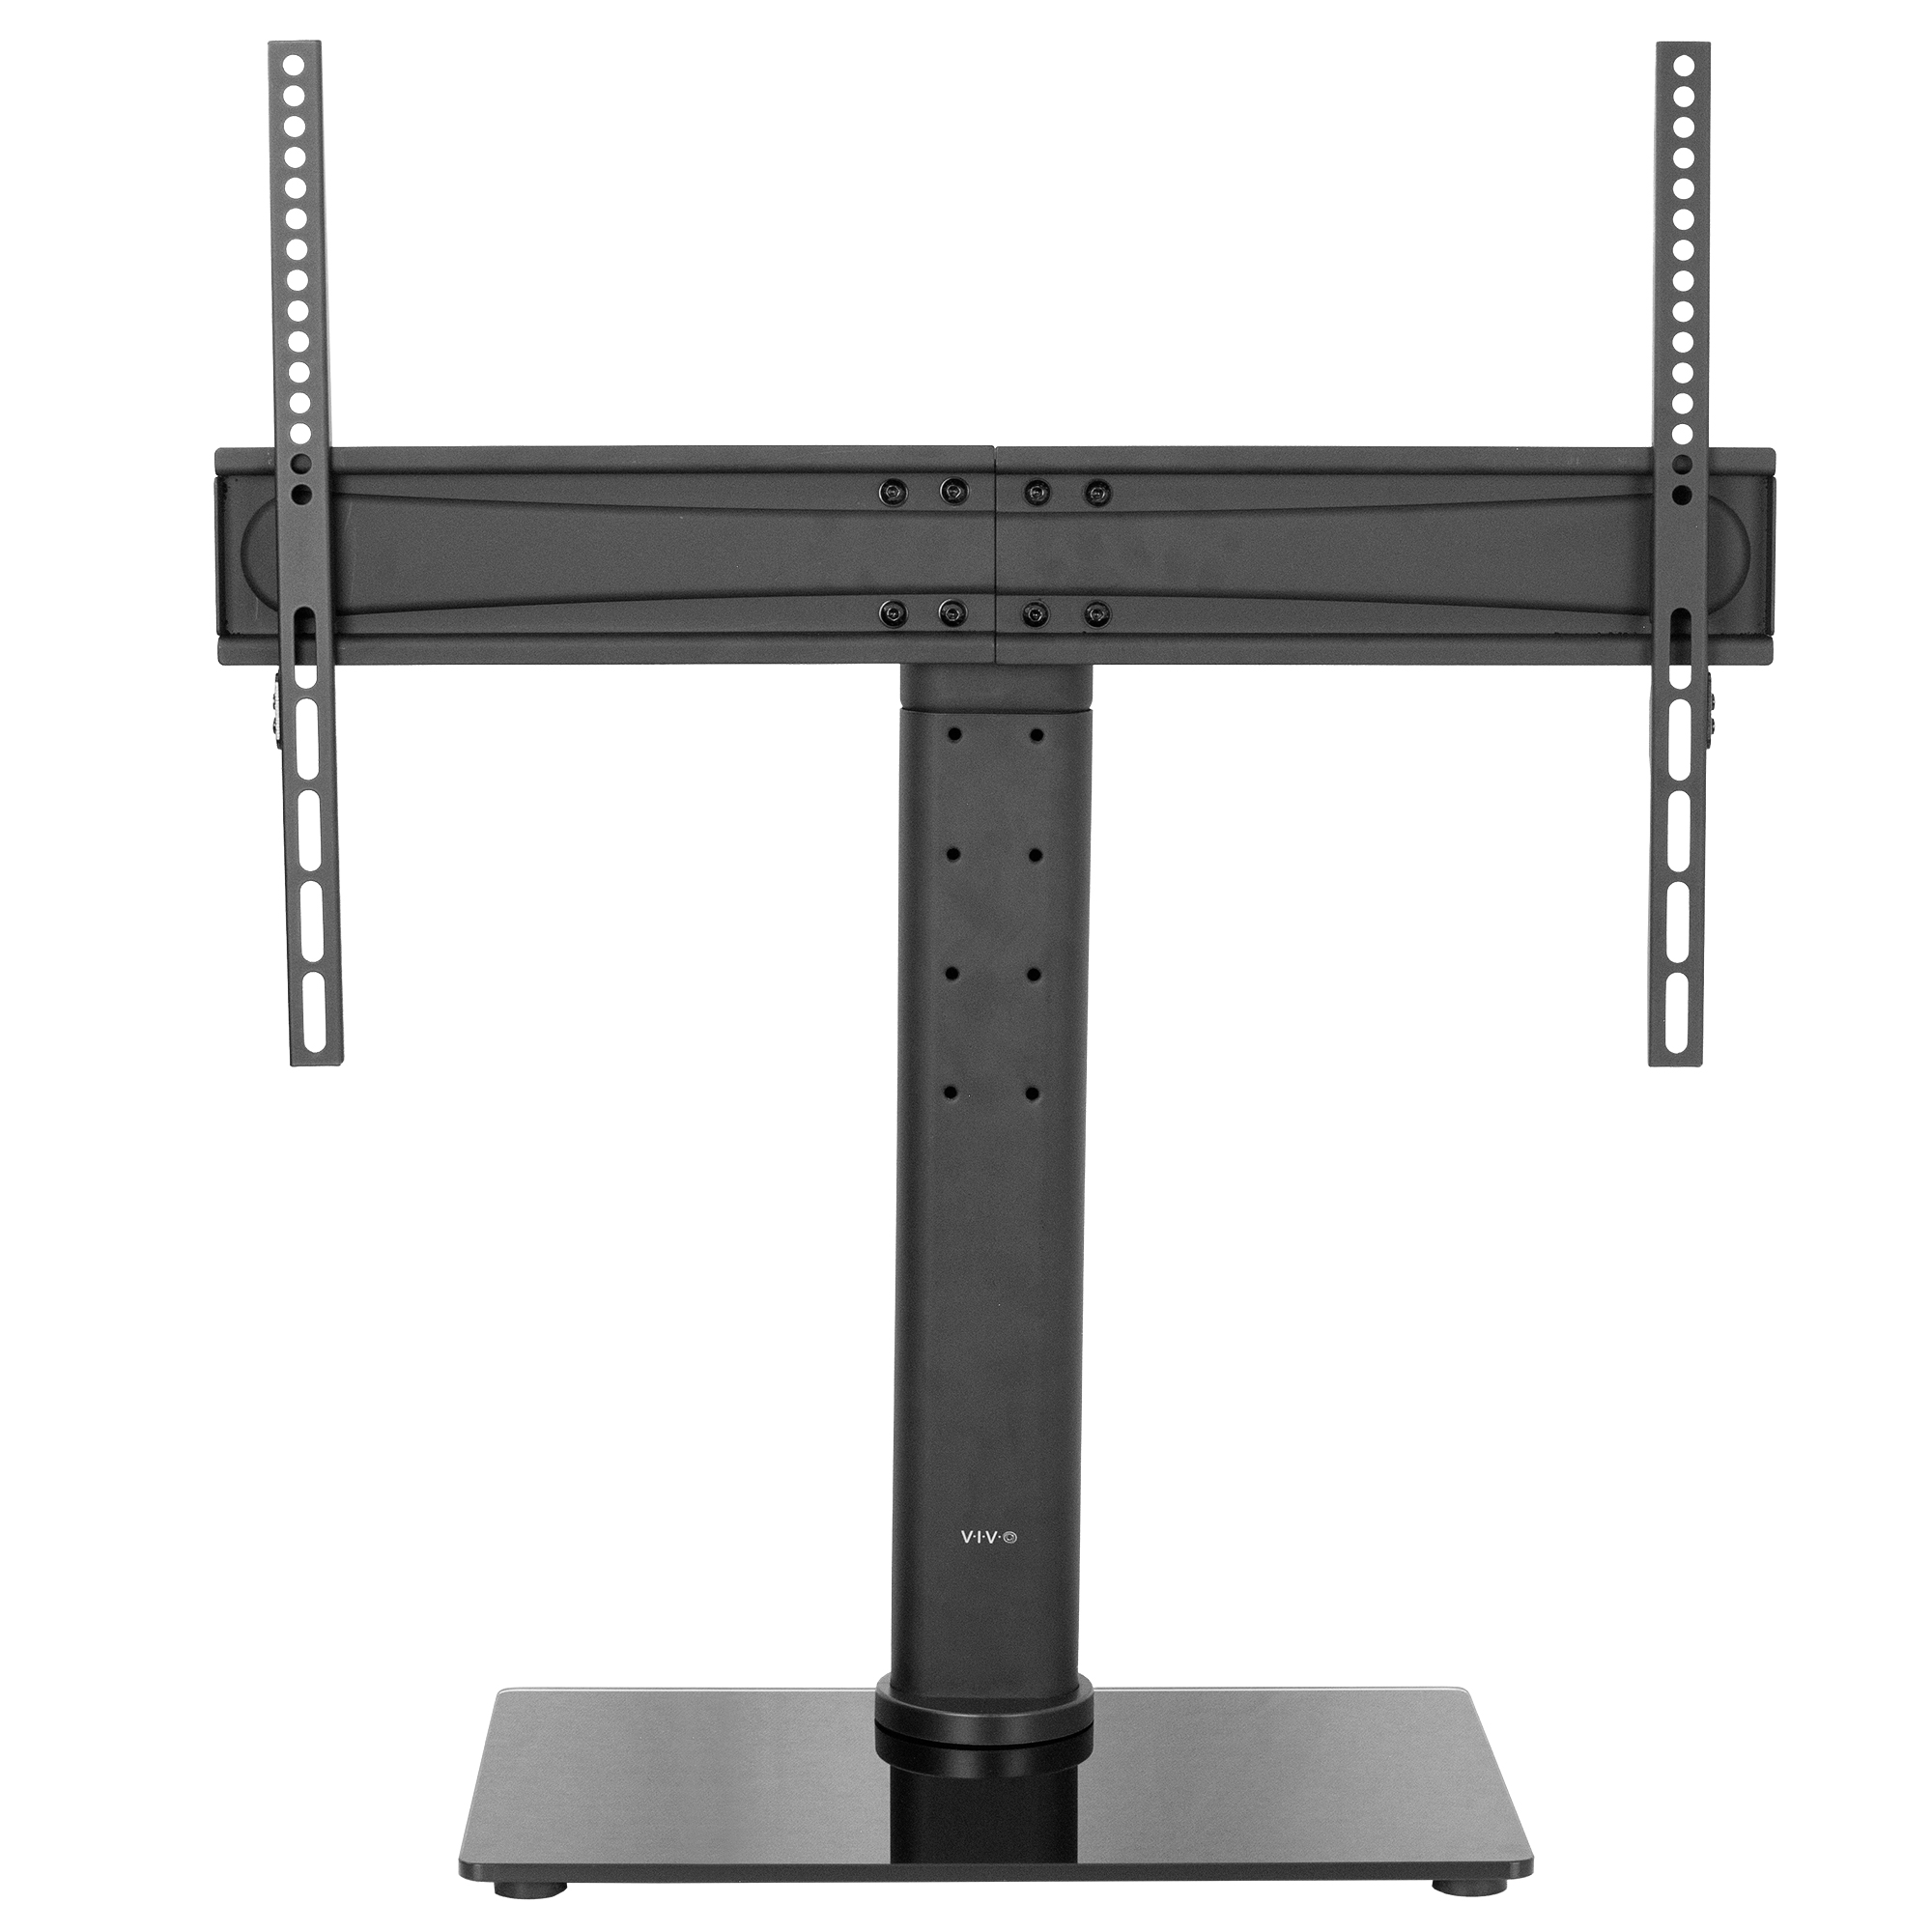 "Universal TV Stand Pedestal Base fits most 17/"" 19/"" 20/"" 21/"" 22/"" 24/"" 30/"" 32/"" 37/"""